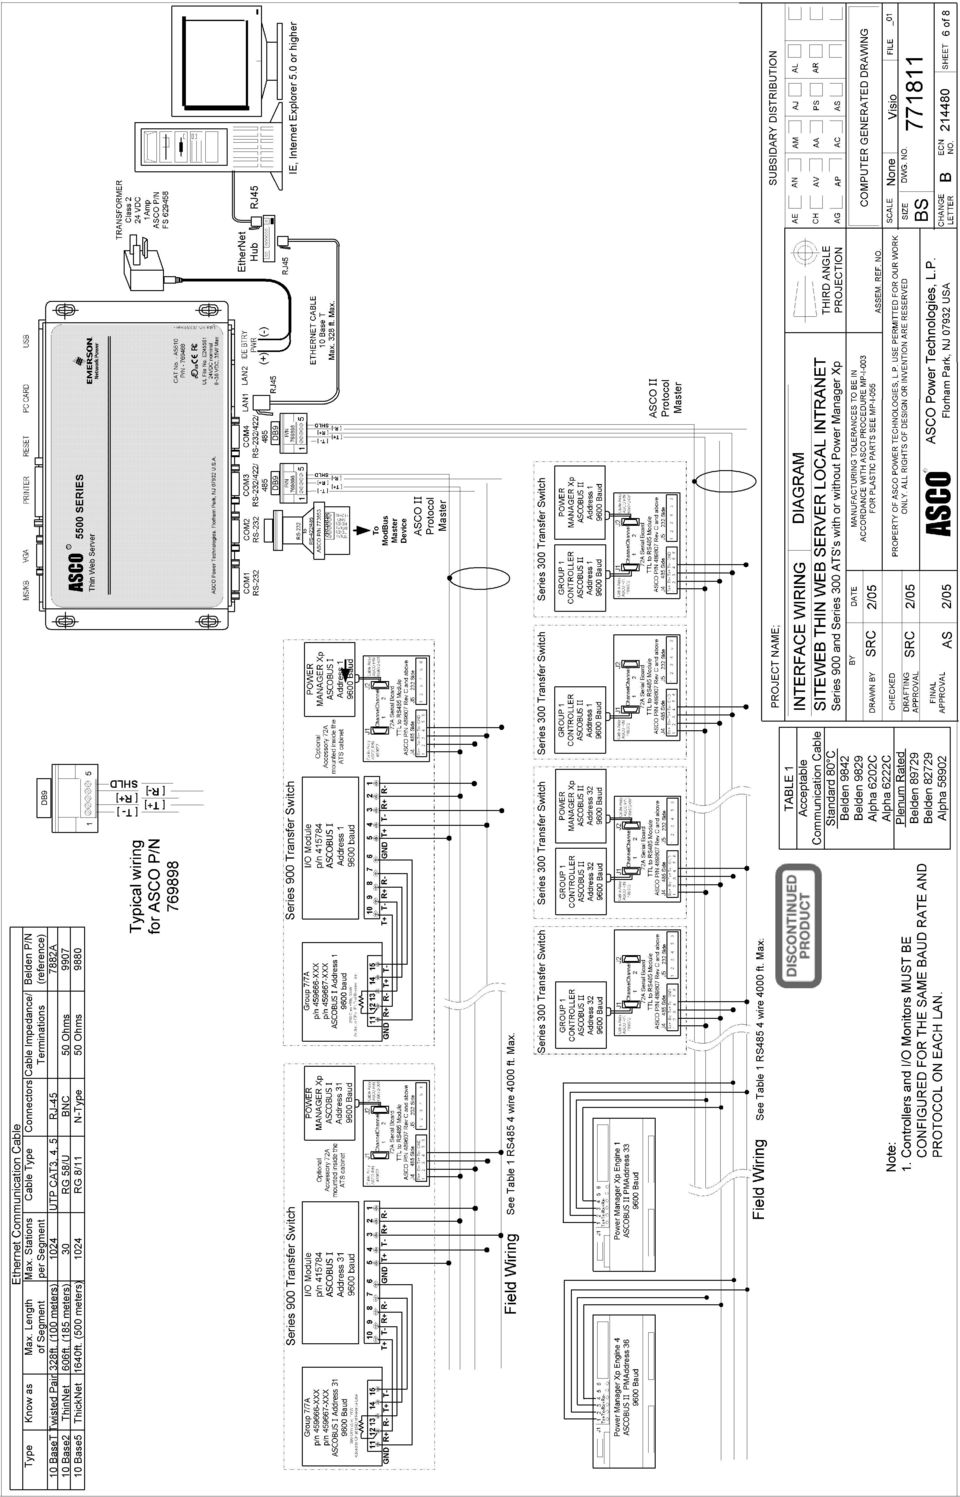 120 vac to 24 transformer wiring diagram  120  get free